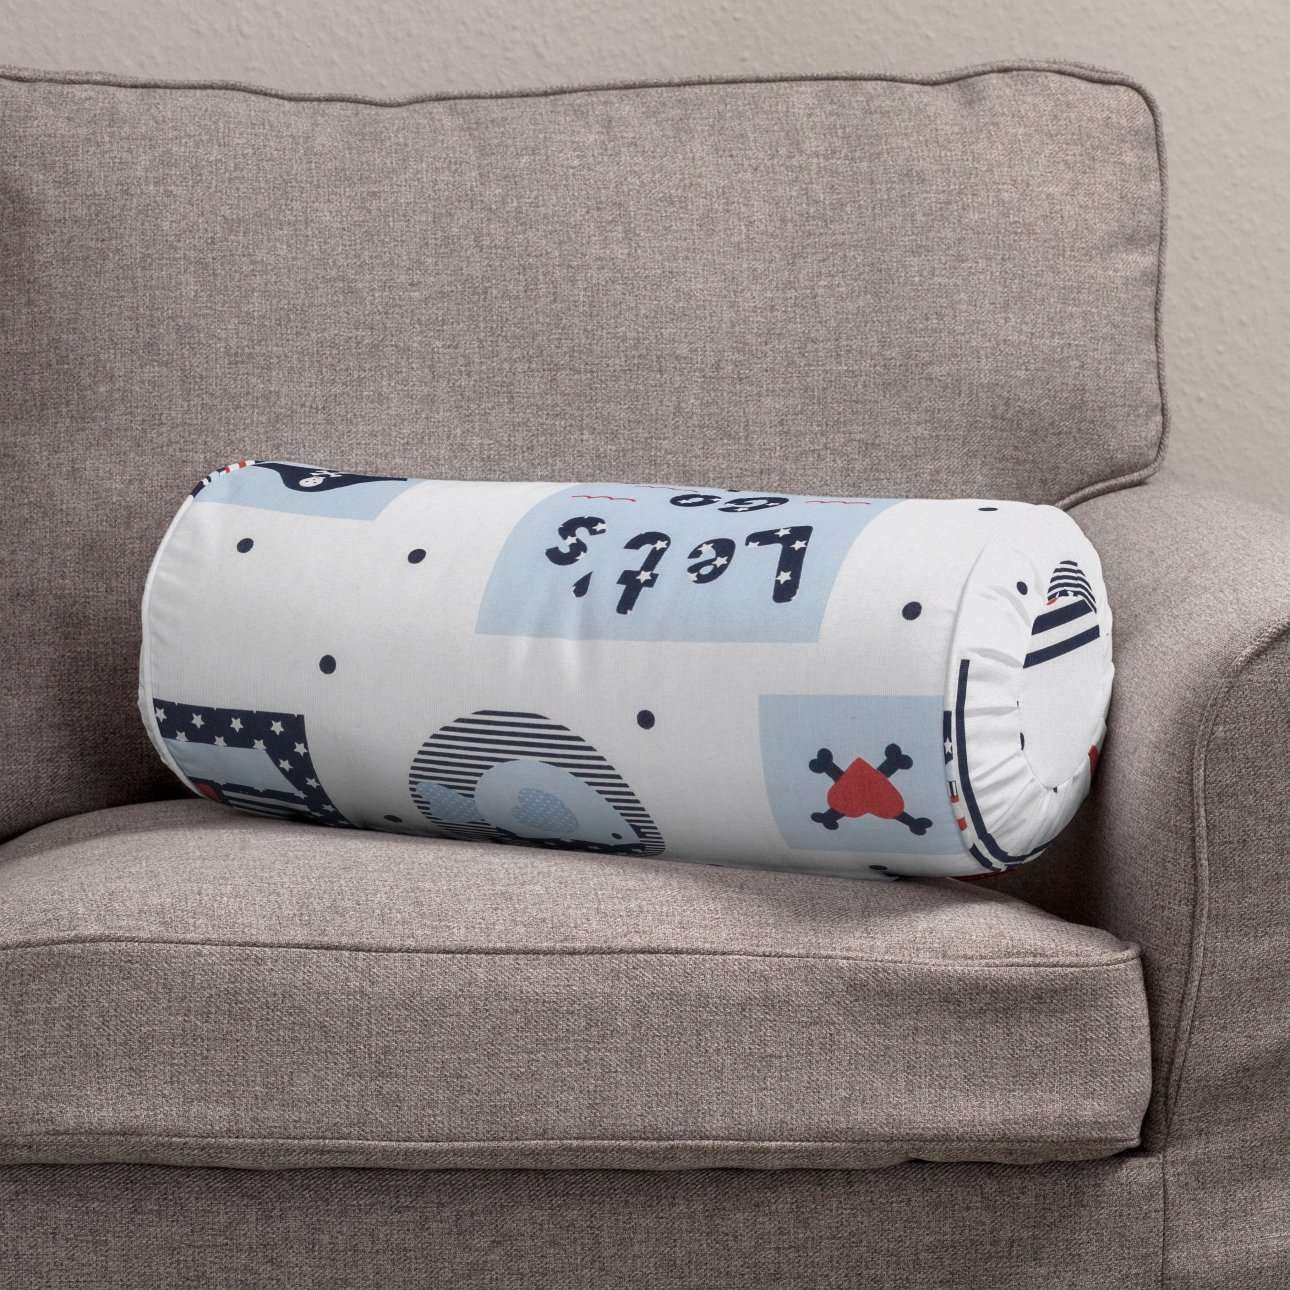 Bolster cushion with pleats Ø 20 × 50 cm (8 × 20 inch) in collection Little World, fabric: 141-29